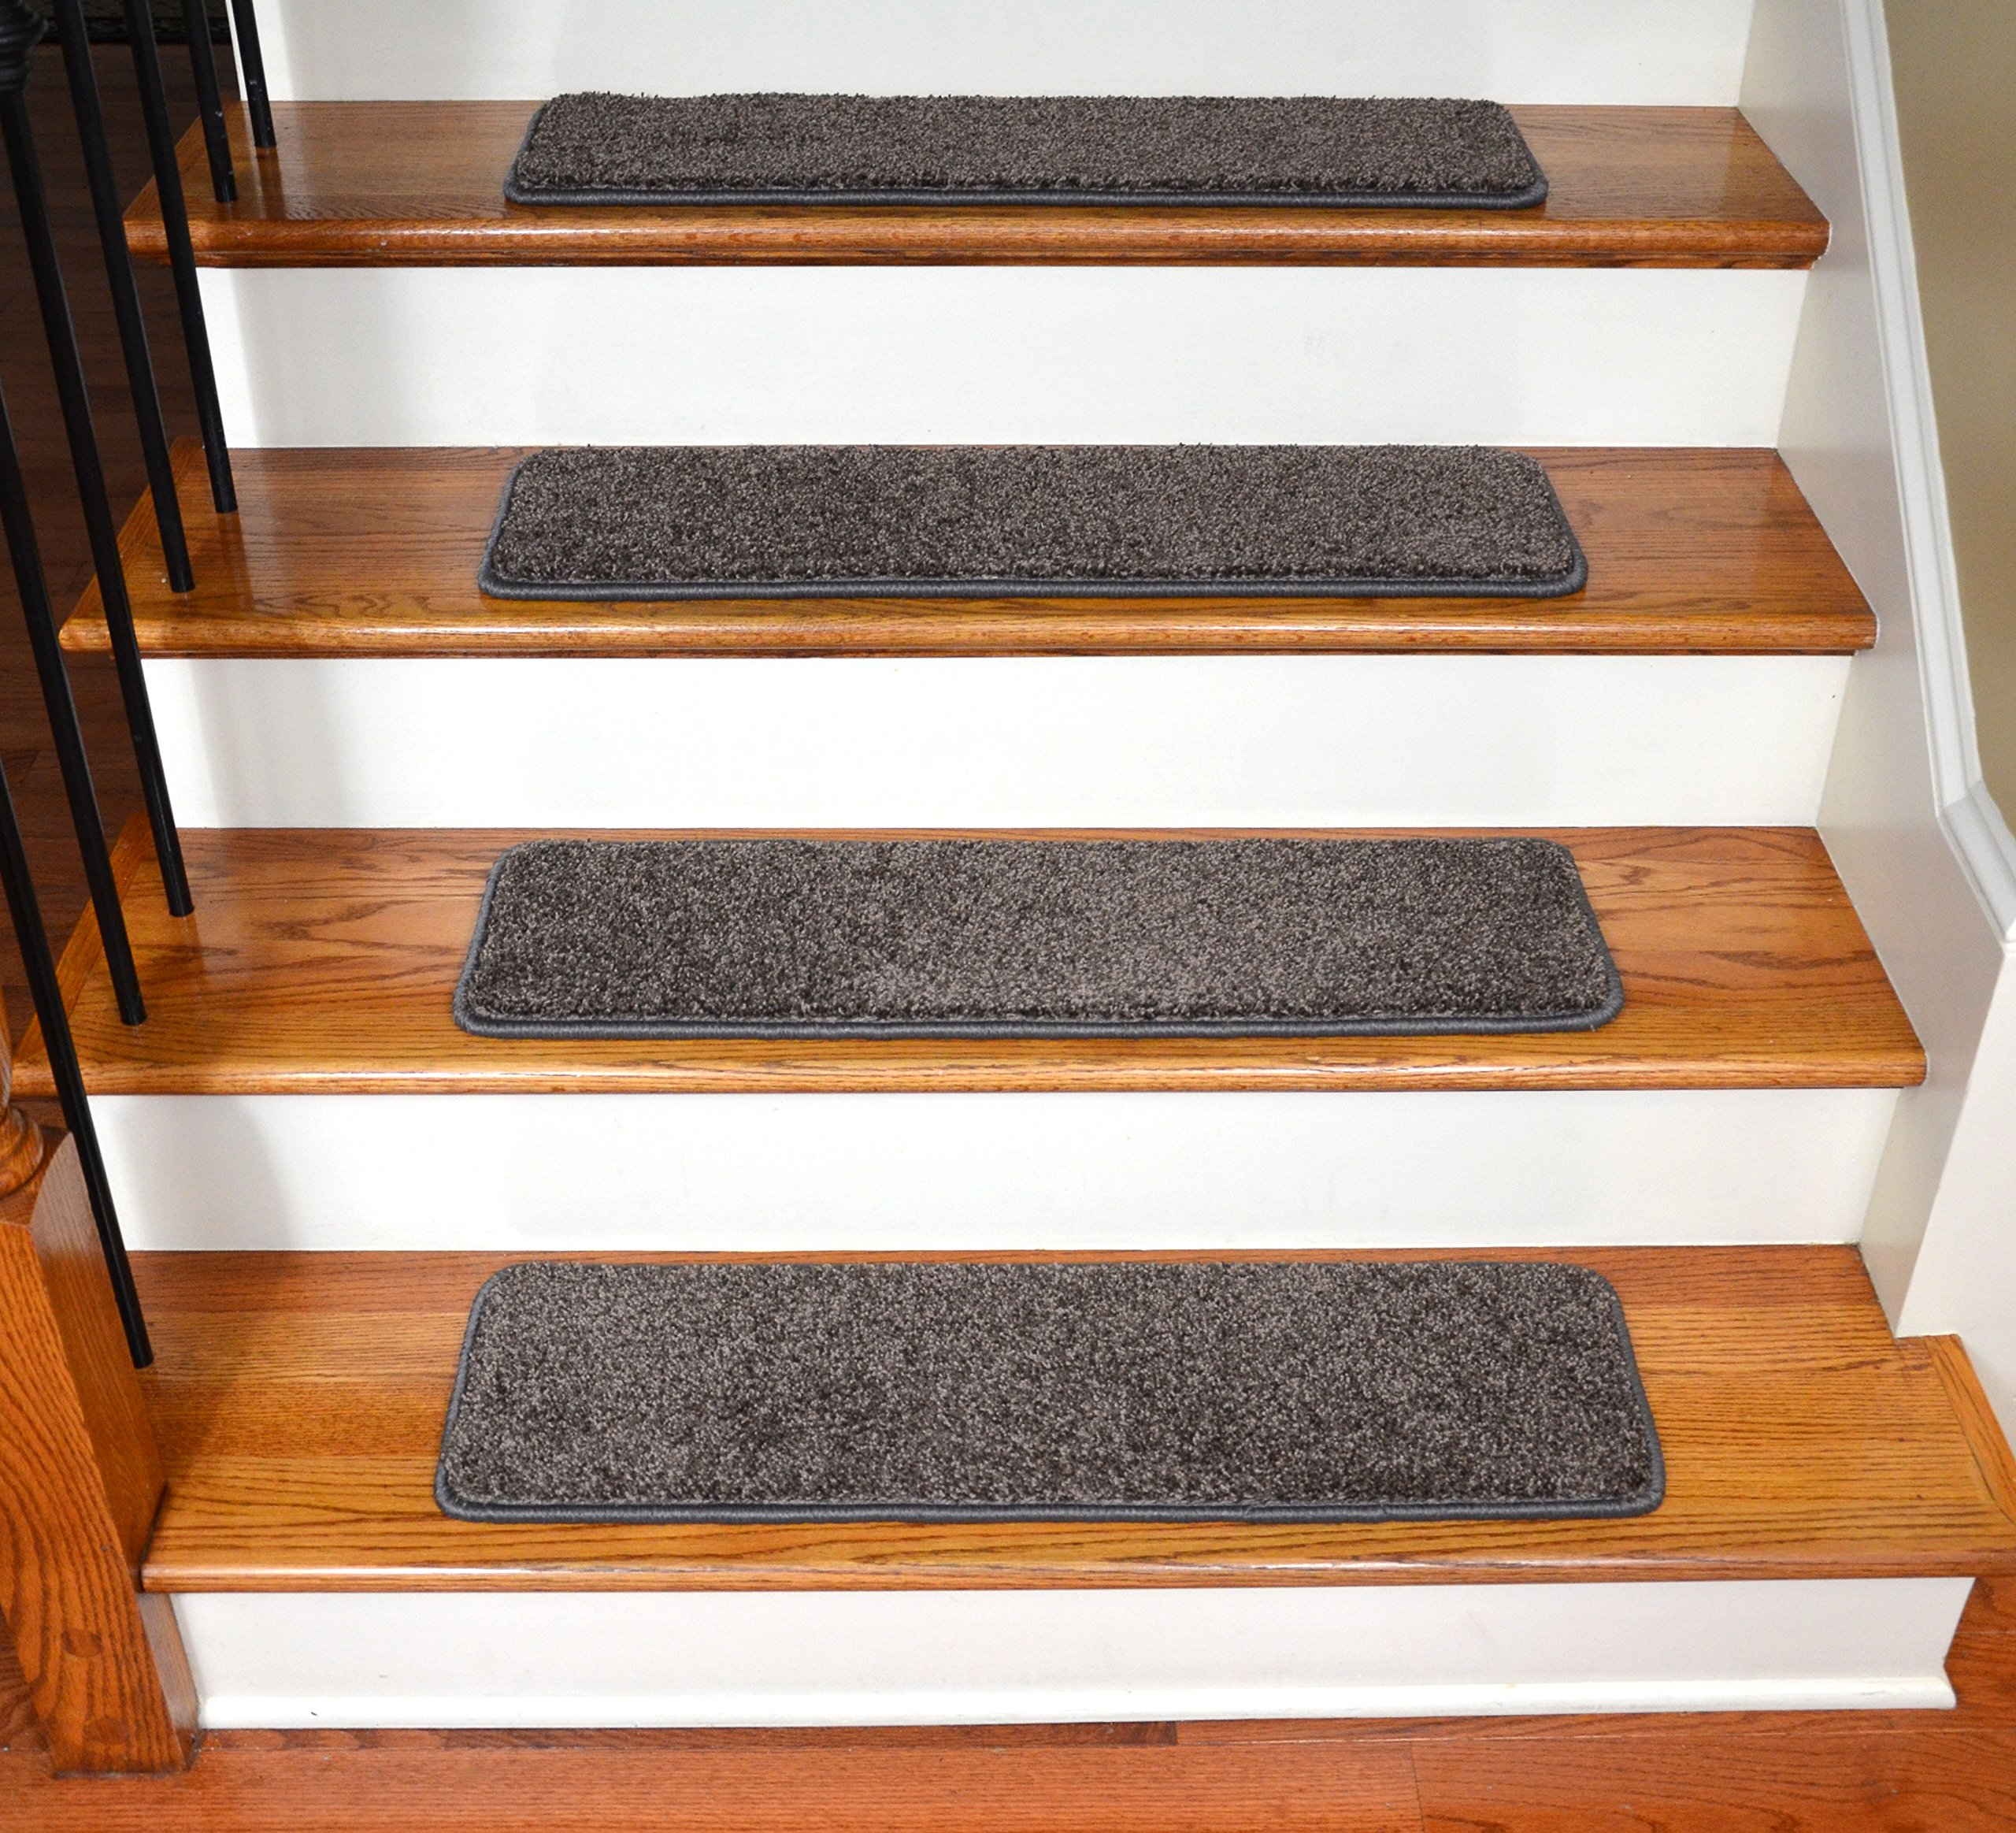 Dean Premium Stair Gripper Tape Free Non-Slip Pet Friendly DIY Carpet Stair Treads 30''x9'' (15) - Smokey Hill Gray by Dean Flooring Company